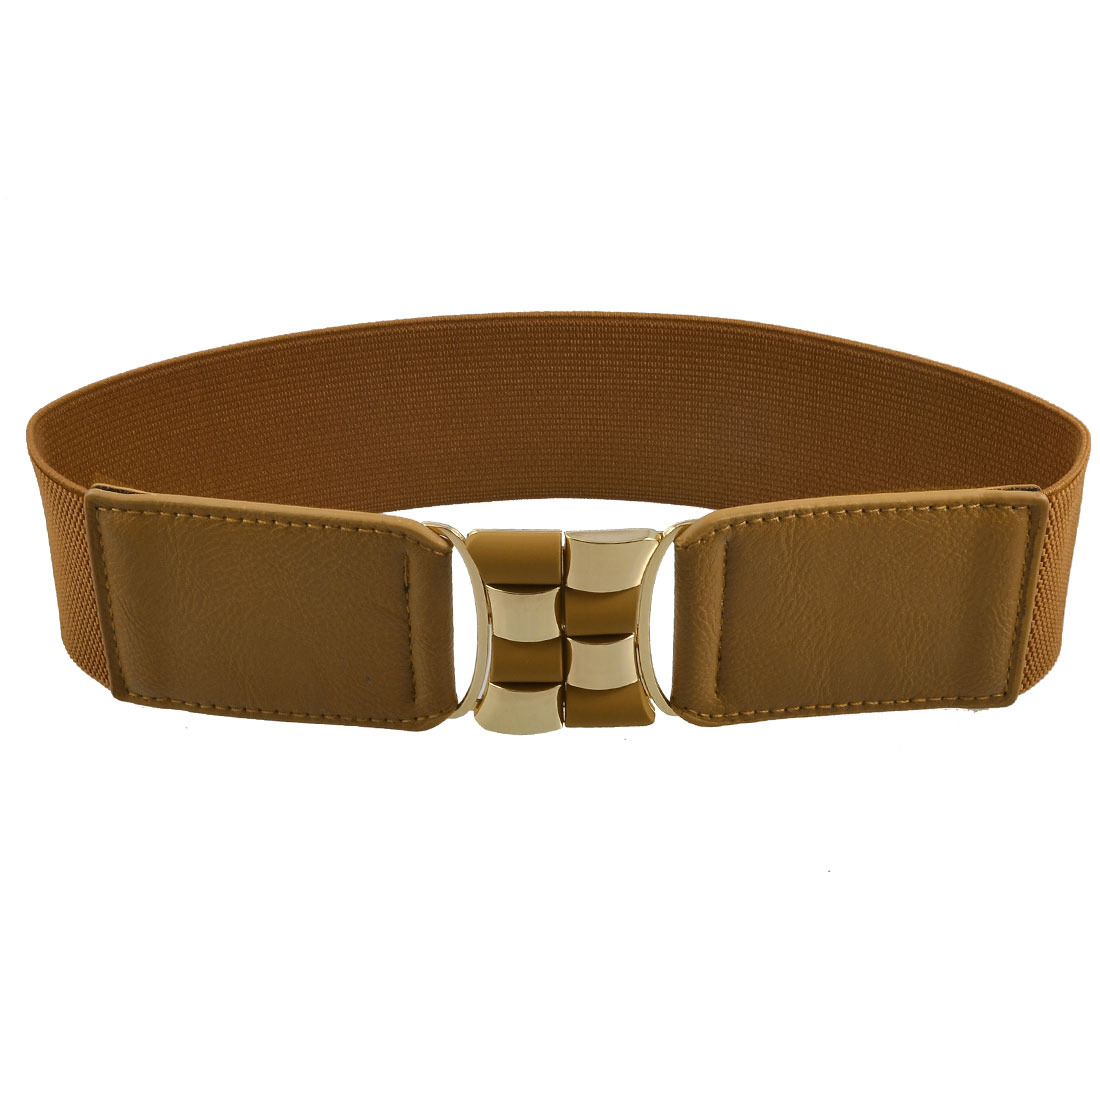 Gold Tone Metal Interlocking Buckle Brown Textured Waist Belt for Ladies